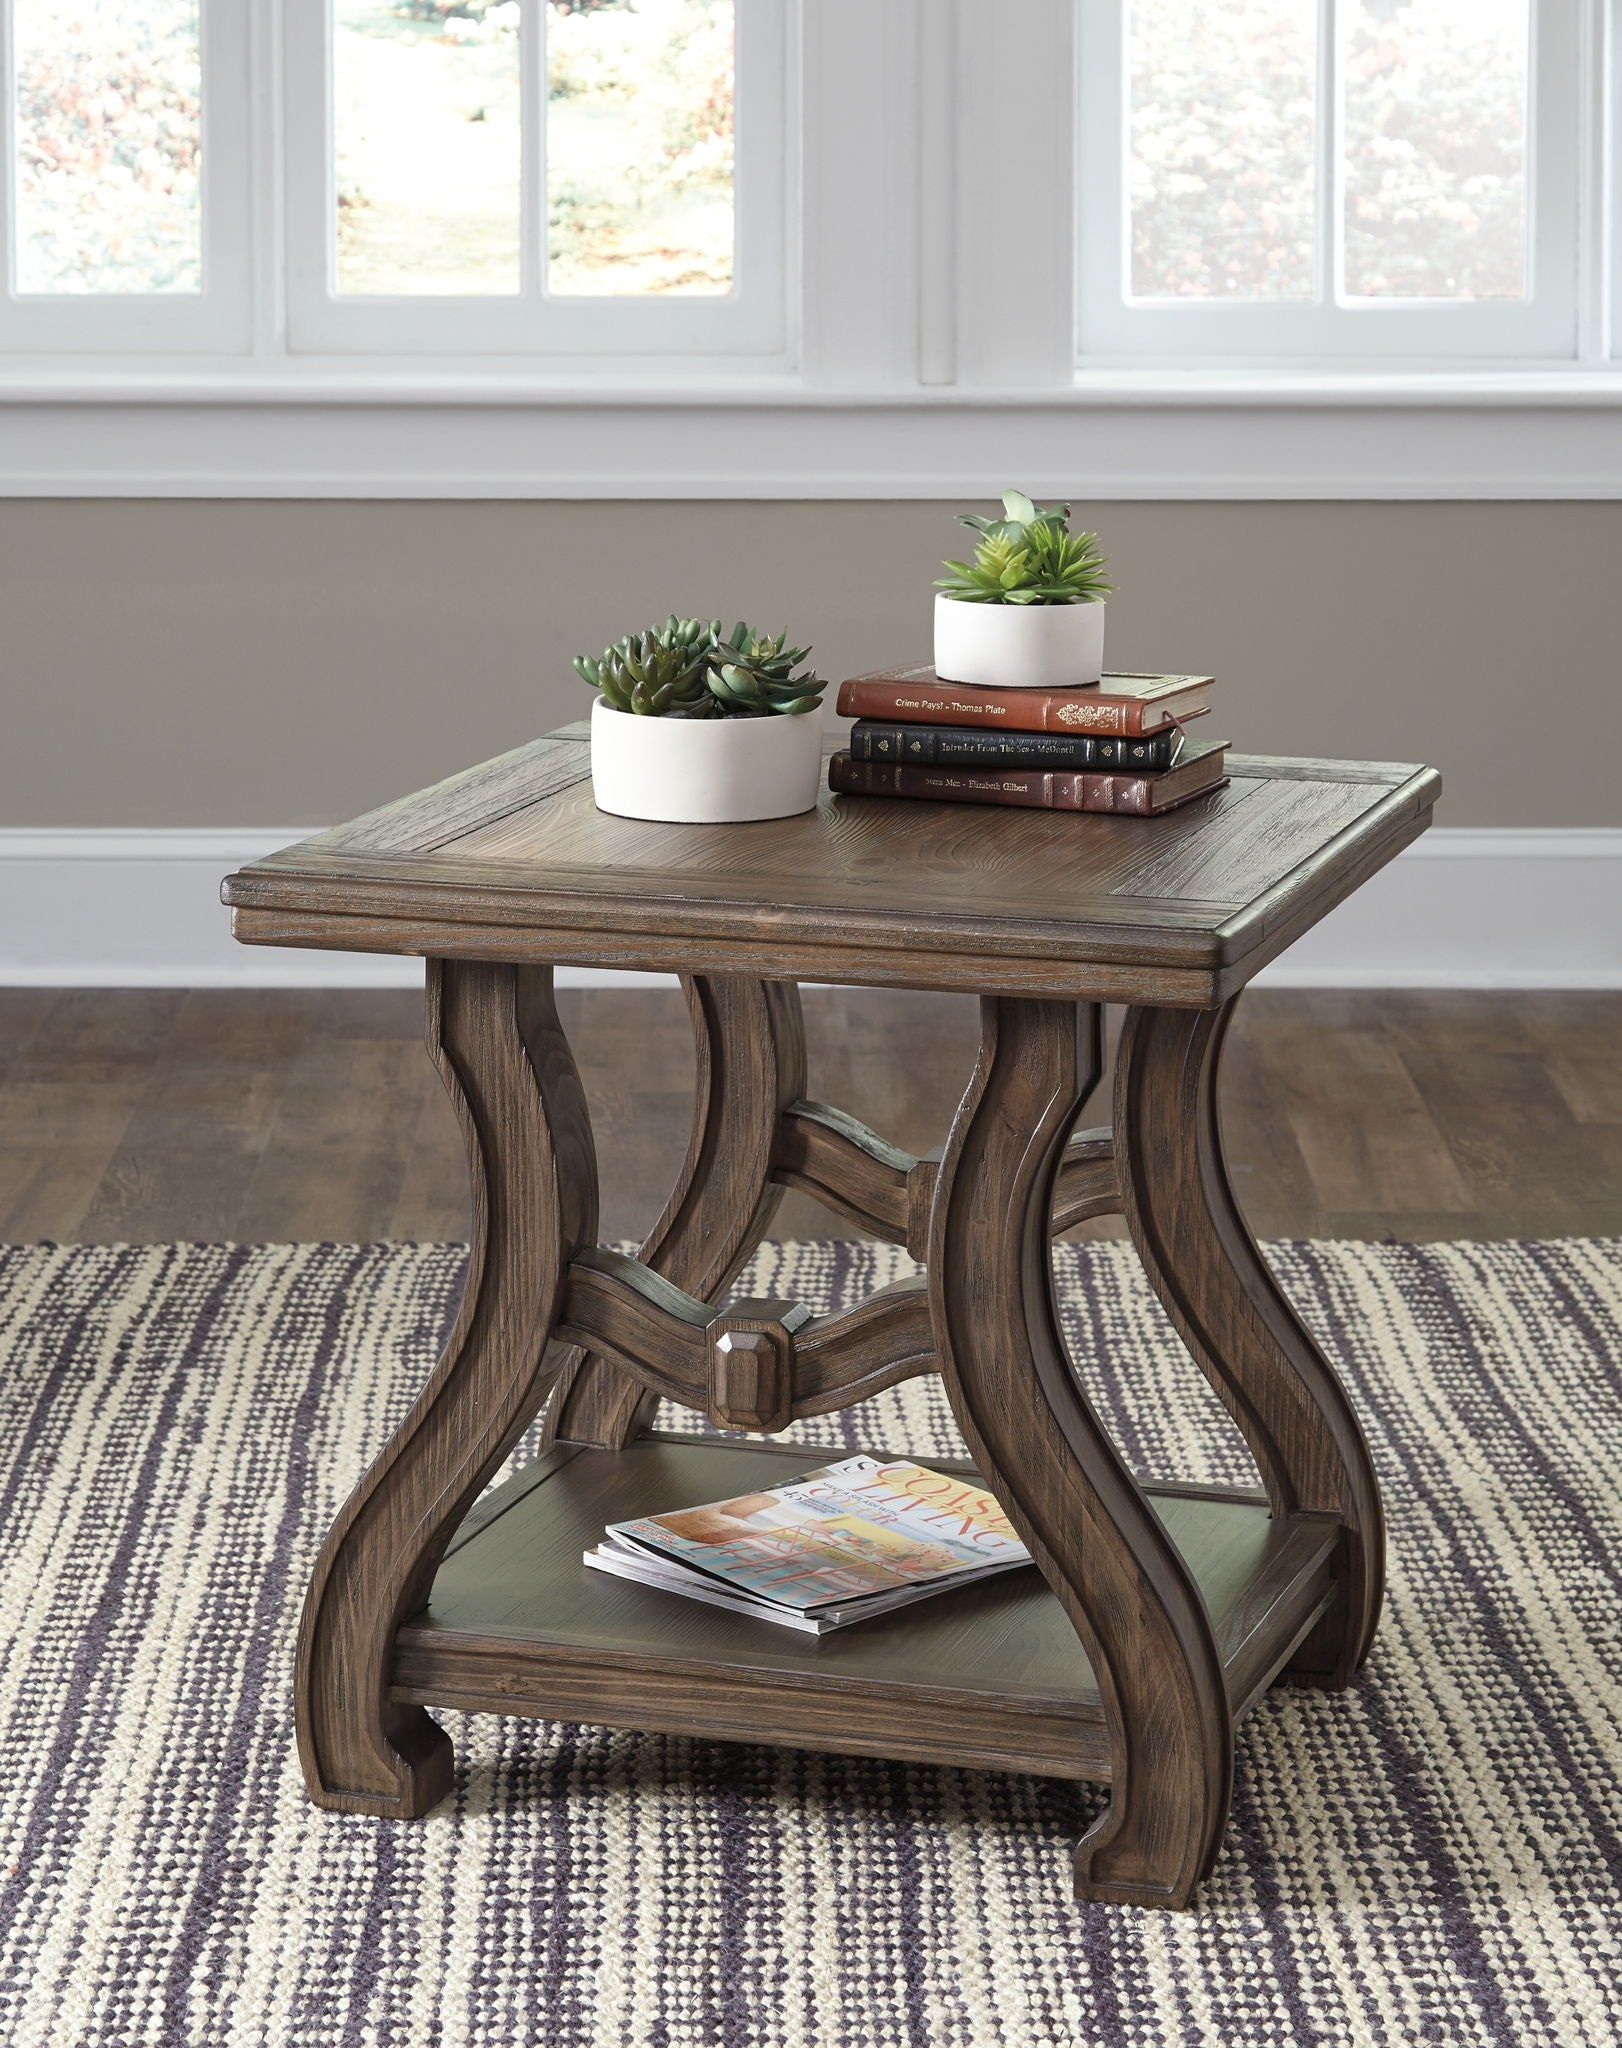 Tanobay End Table | Calgary's Furniture Store